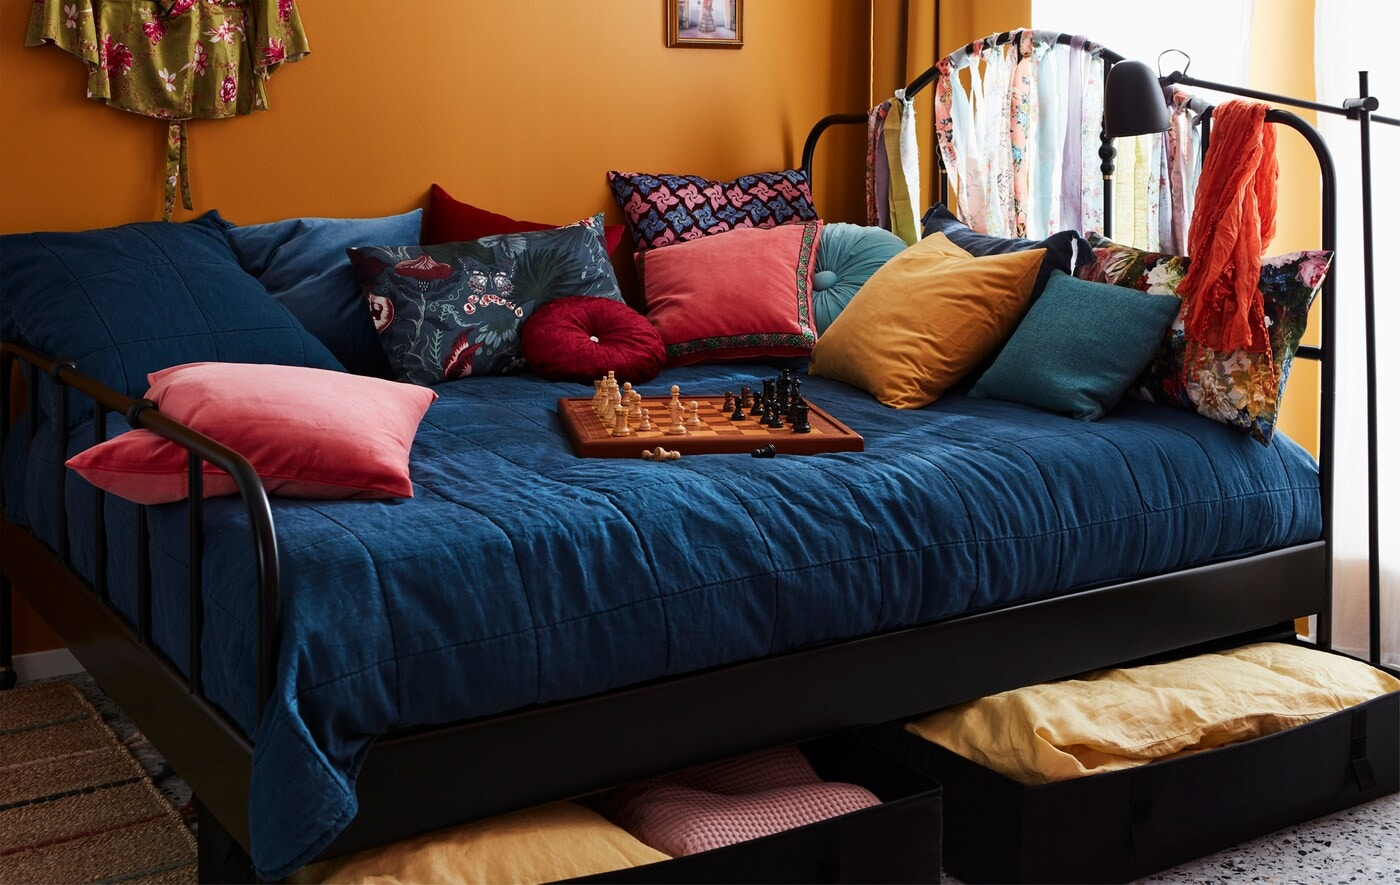 Wide, colourfully made bed with a lot of cushions and a game of chess on top. Bed linen stored in boxes underneath.